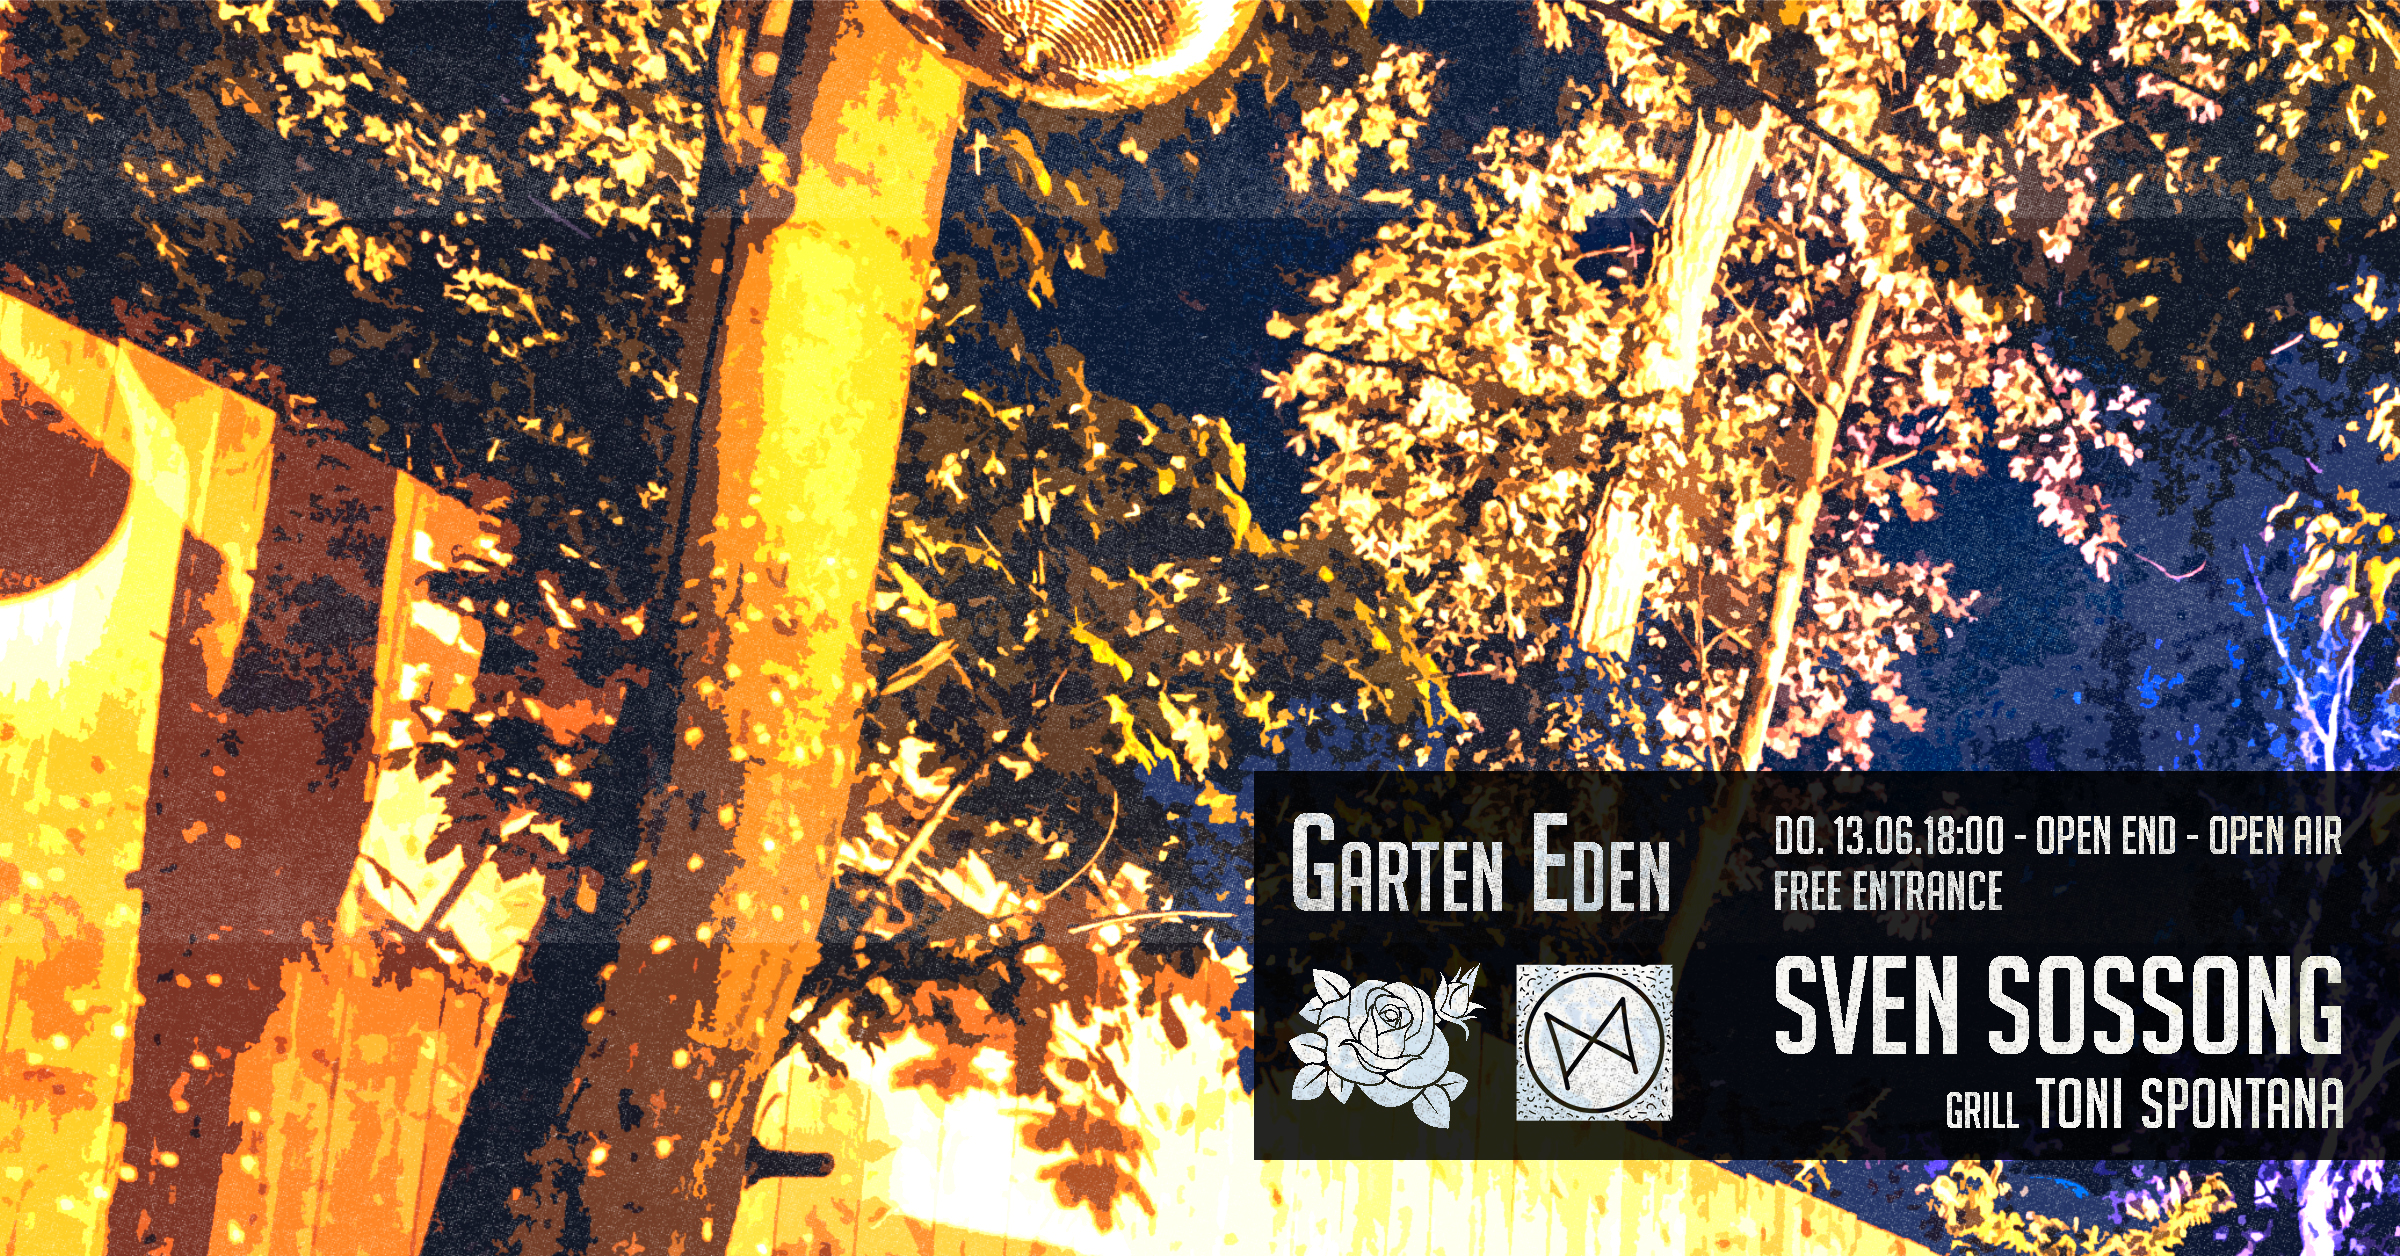 Garten Eden Open Air - Open End - Free Entrance